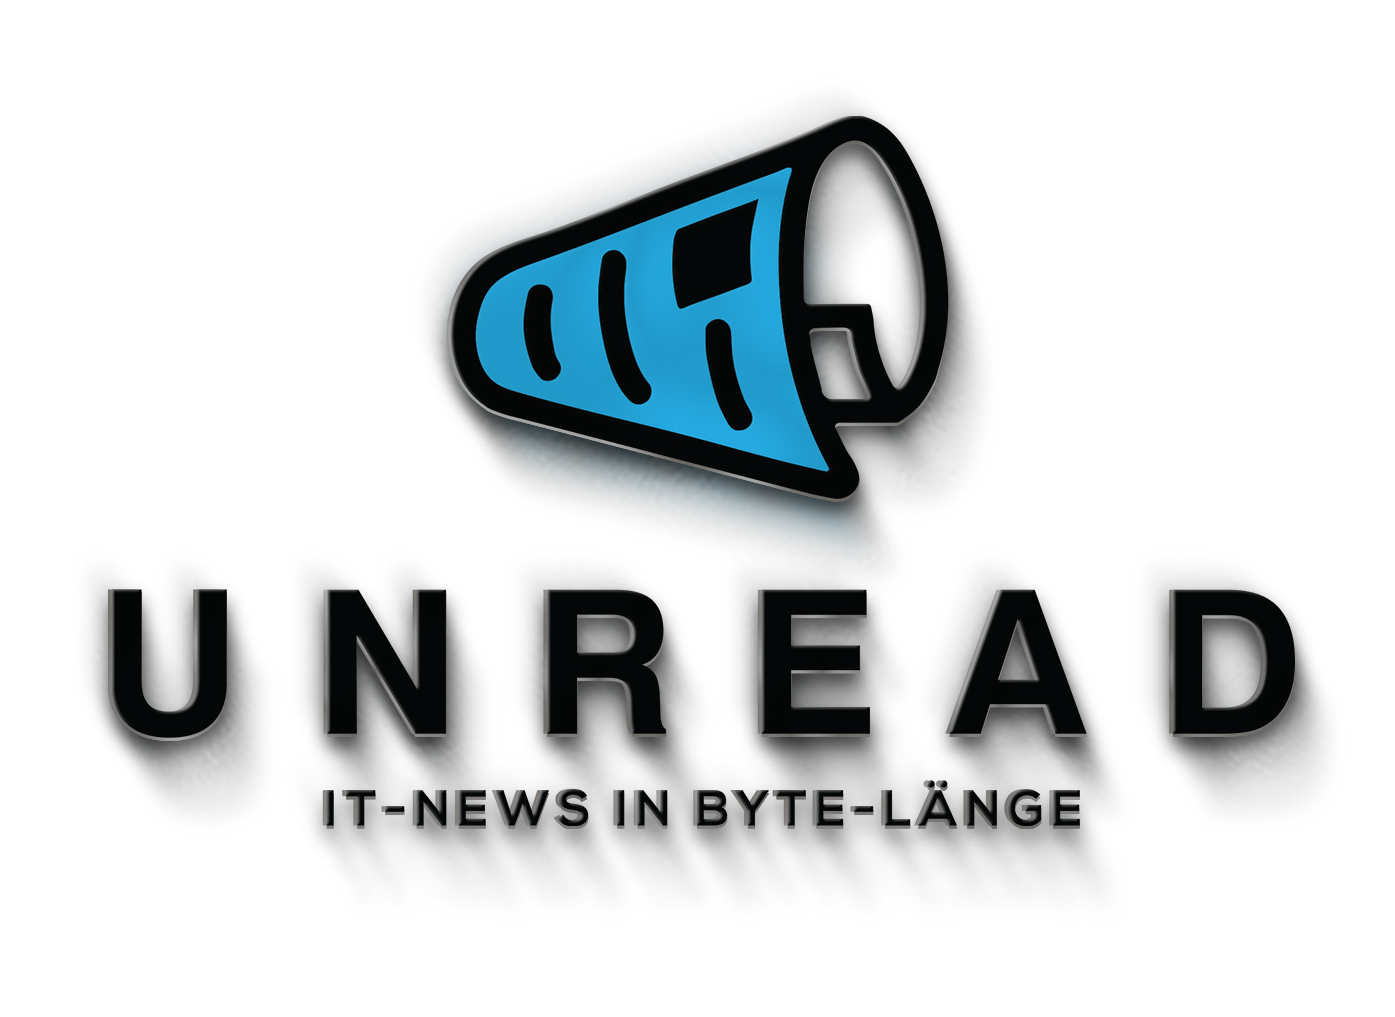 logo unread news